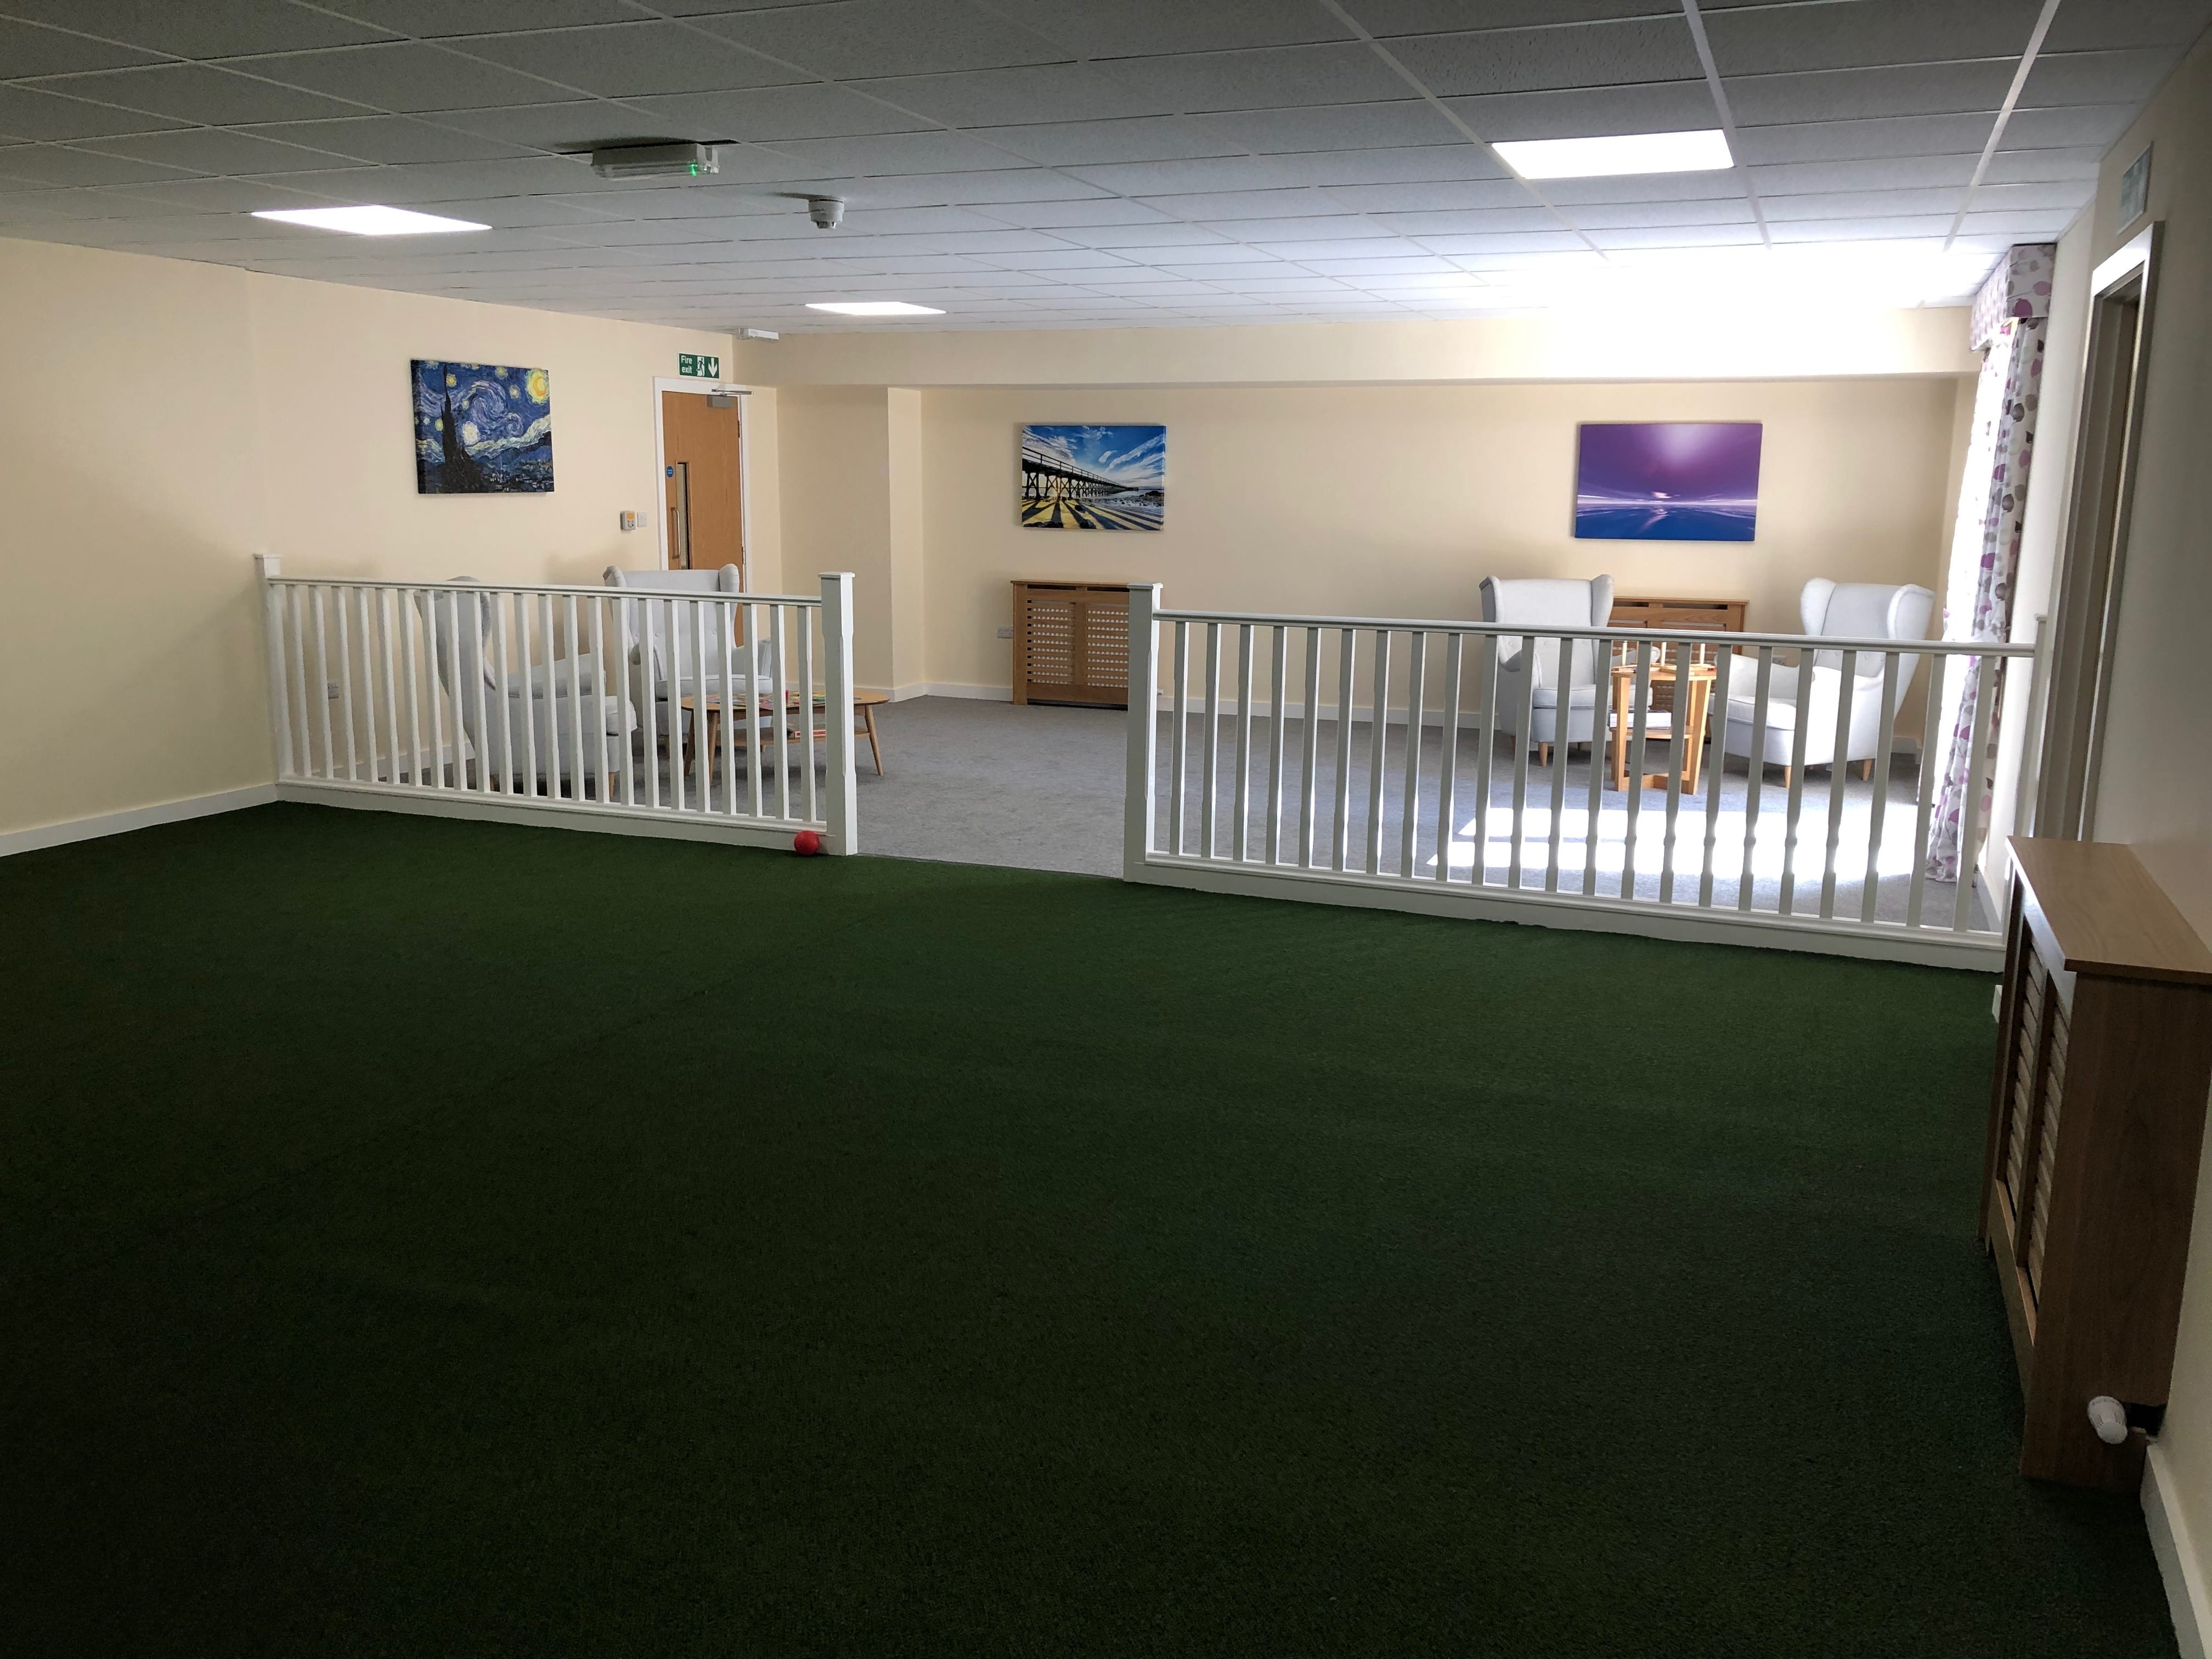 Indoor Bouls area for residential care patients at Scissett Mount Care Home in Huddersfield